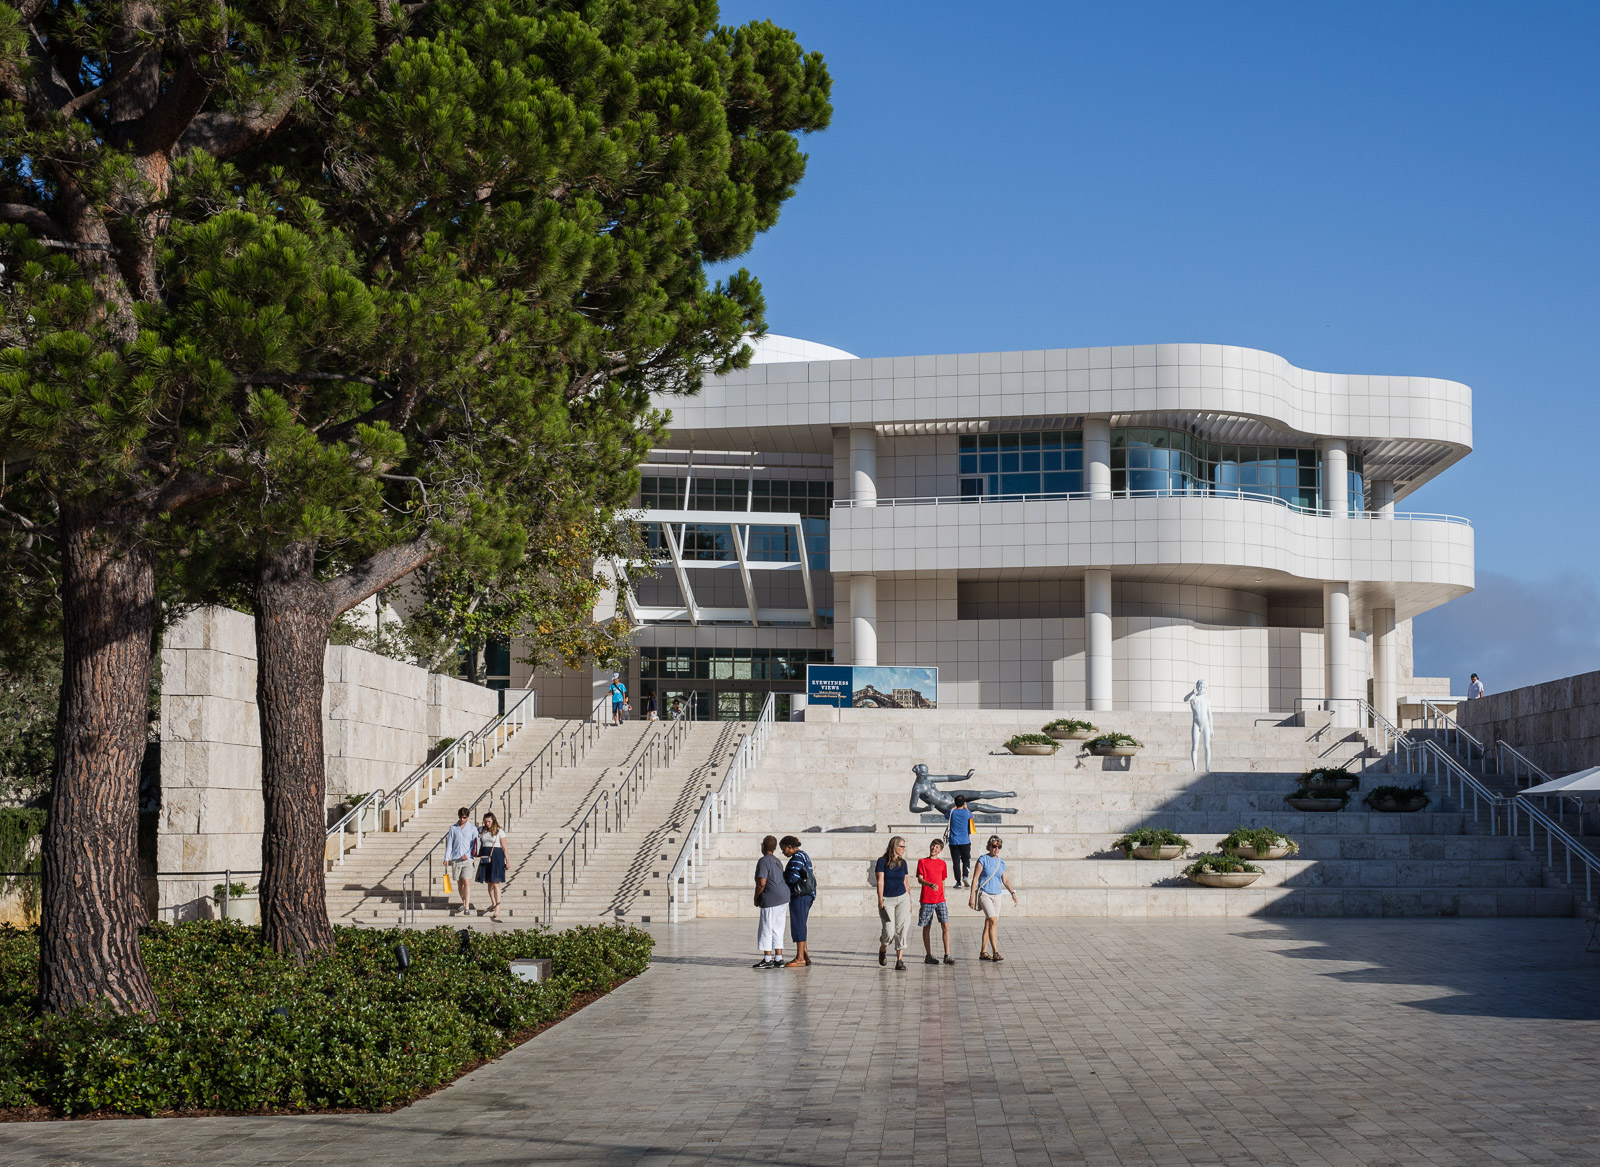 The Getty Musem